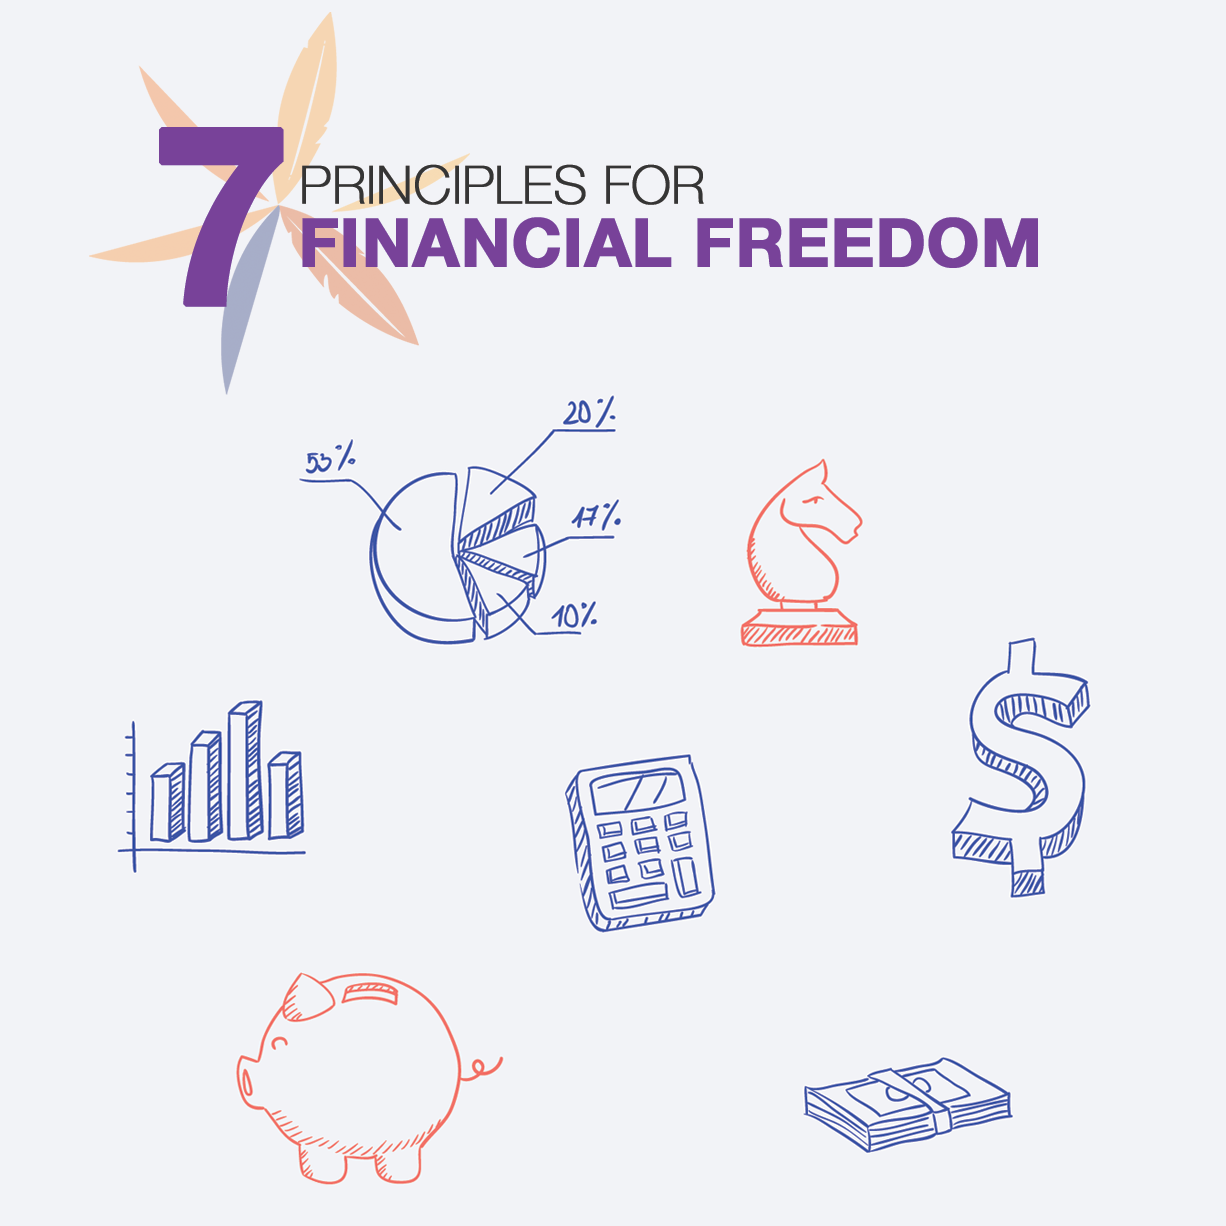 Smart Lending - Unique to the Mortgage Phoenix Group, is our 7 Principles for Financial Freedom. This is where we go beyond lending and into spreading financial prosperity. Teaching you what you need to know about getting into a home with a mortgage that is optimized for your personal situation.